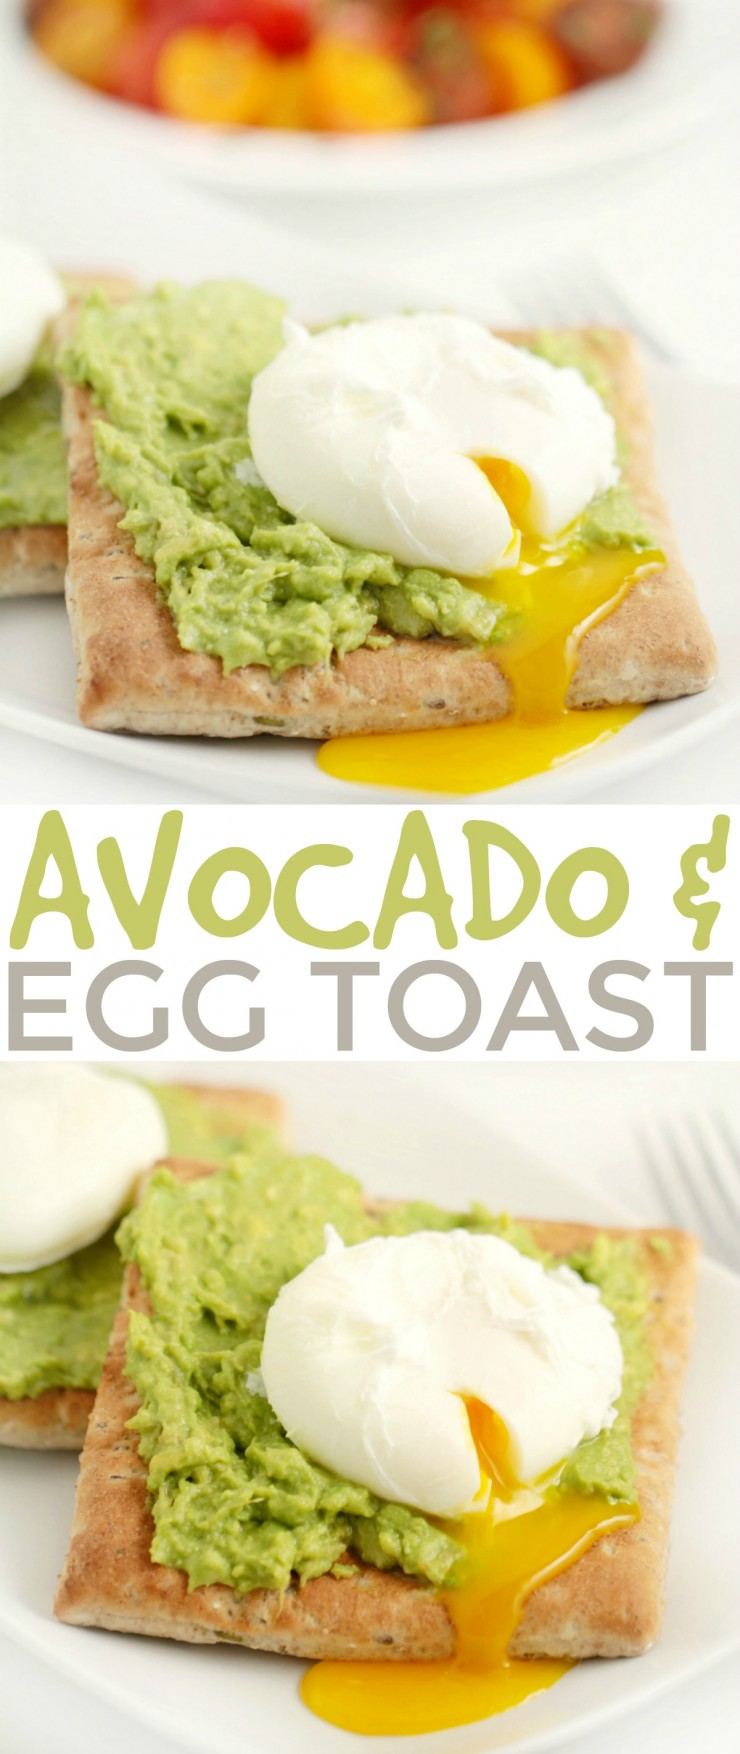 Looking for a power snack or breakfast option? Check out this unexpectedly delicious recipe for Avocado & Egg Toast - packed with whole grains and the goodness of fresh egg and avocado. This easy snack will get you through the day!